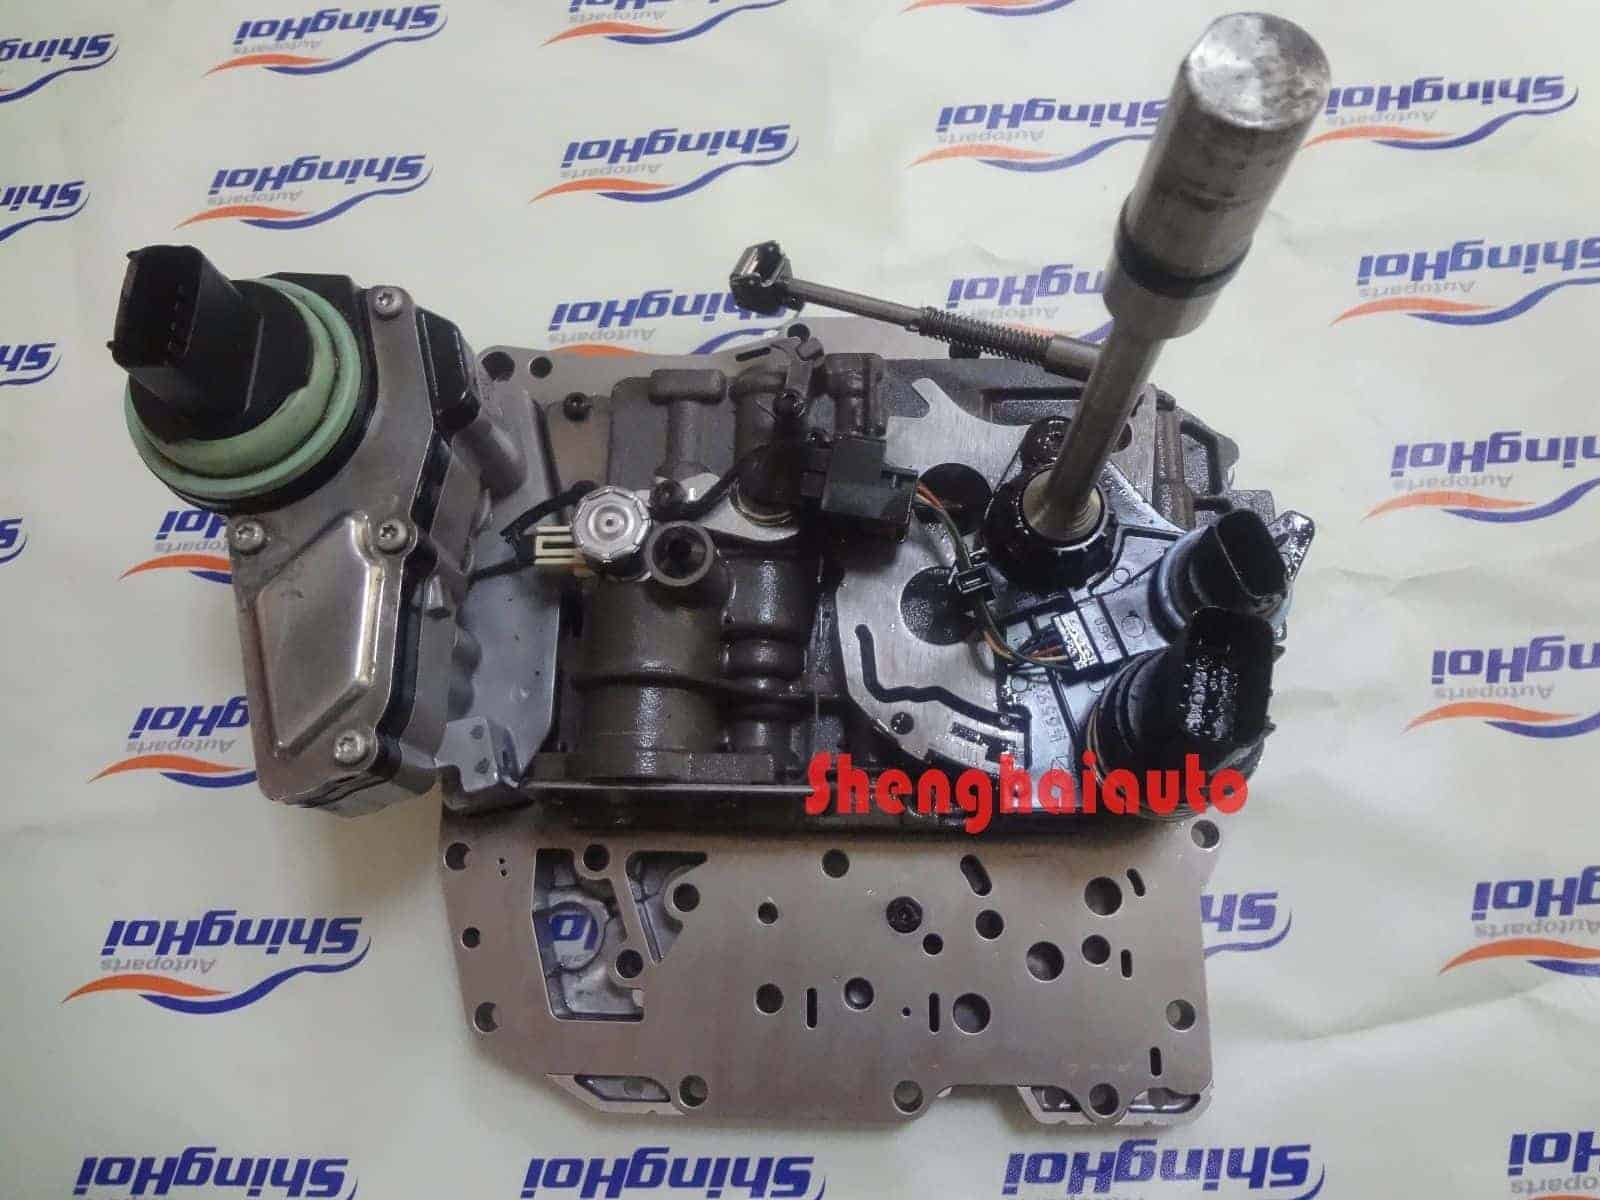 Prats 42rle four speed automatic tranny consider, that